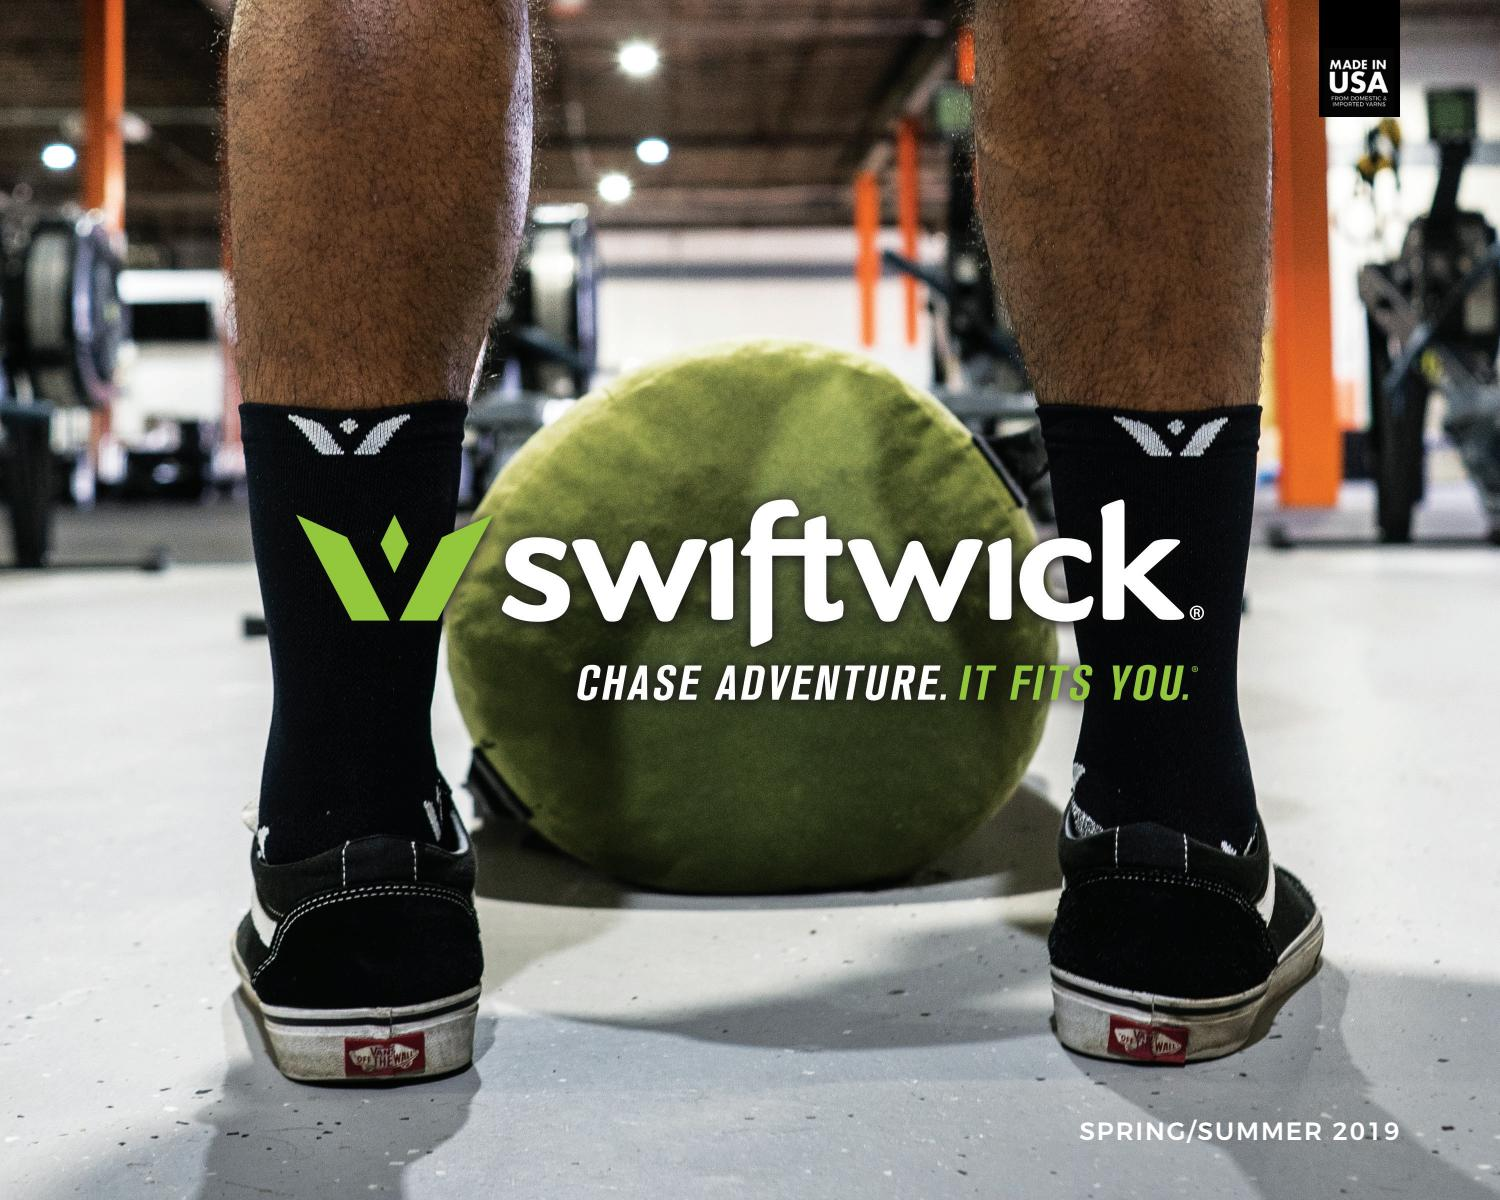 No-Itch Merino Wool Ultimate Durability Tall Crew Socks Socks Built for Cycling /& Hiking Swiftwick- PURSUIT SEVEN